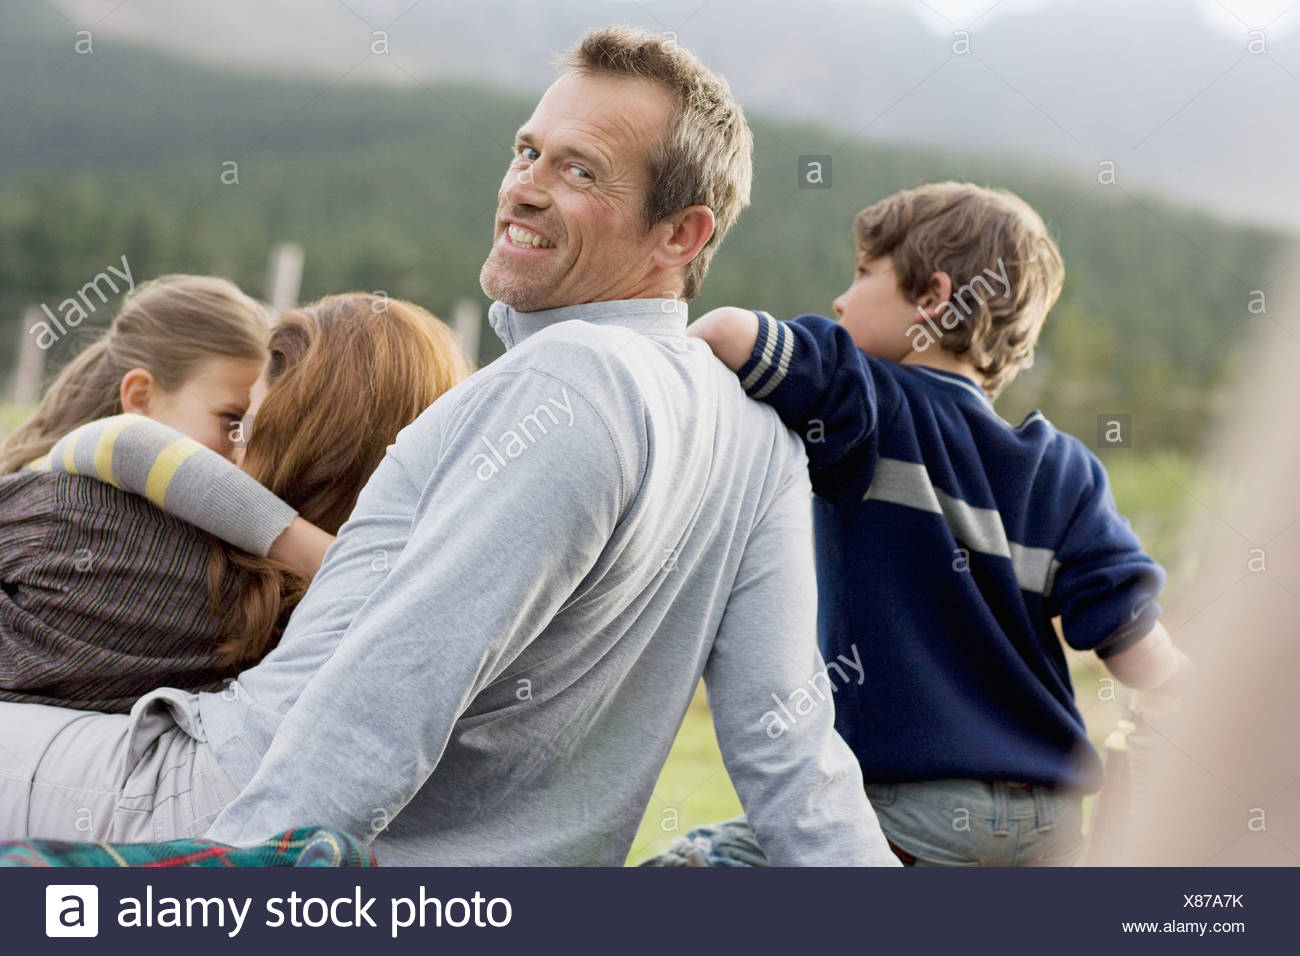 Family hanging out together outdoors - Stock Image